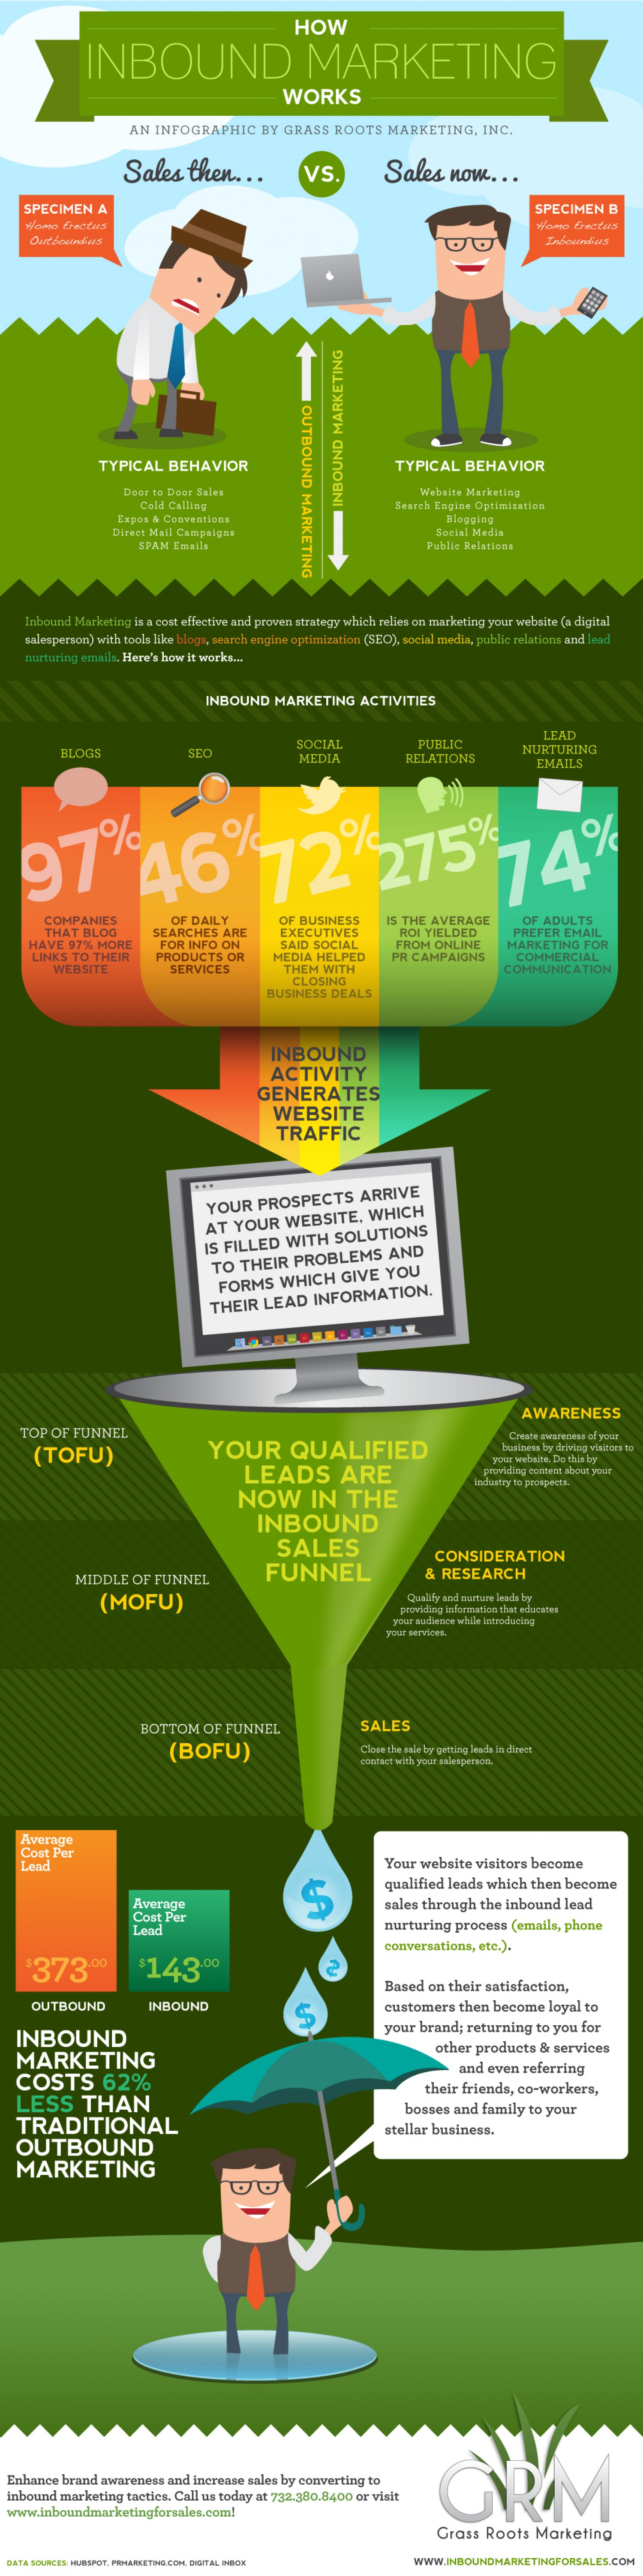 how-inbound-marketing-works_502917b9938fa_w1500-255x1024